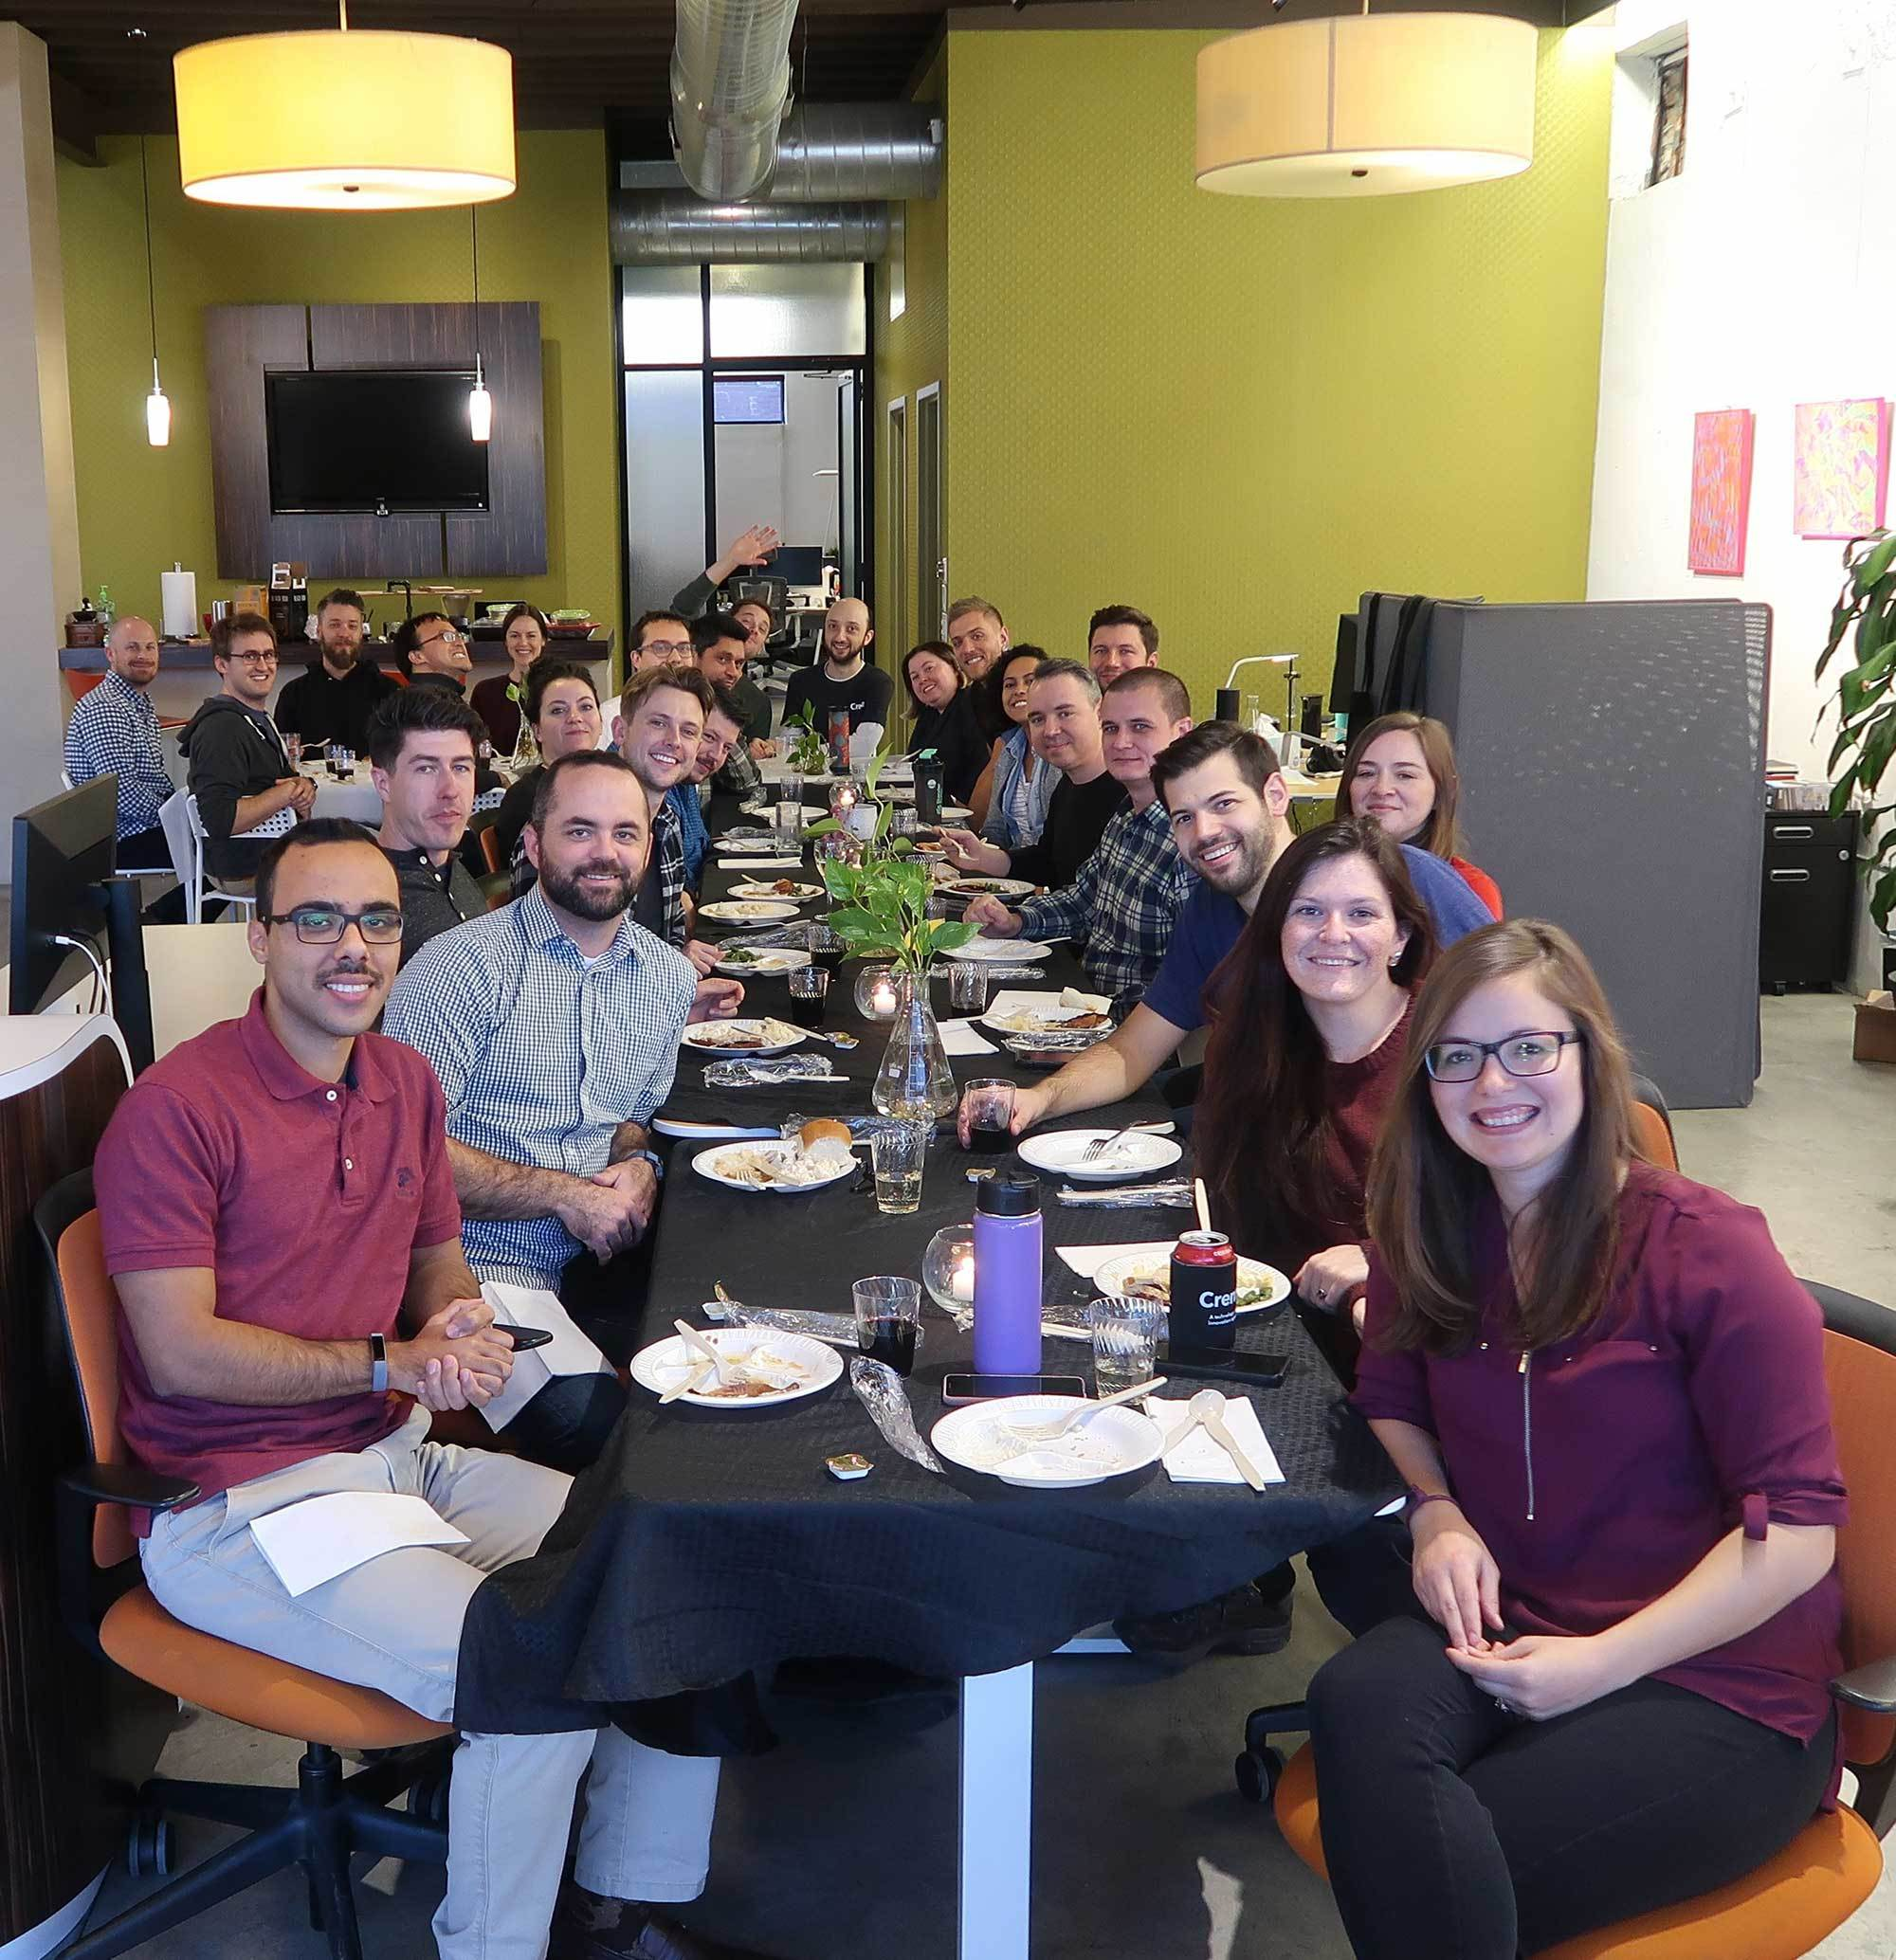 Photo of the Crema team having a meal together in the Crema office